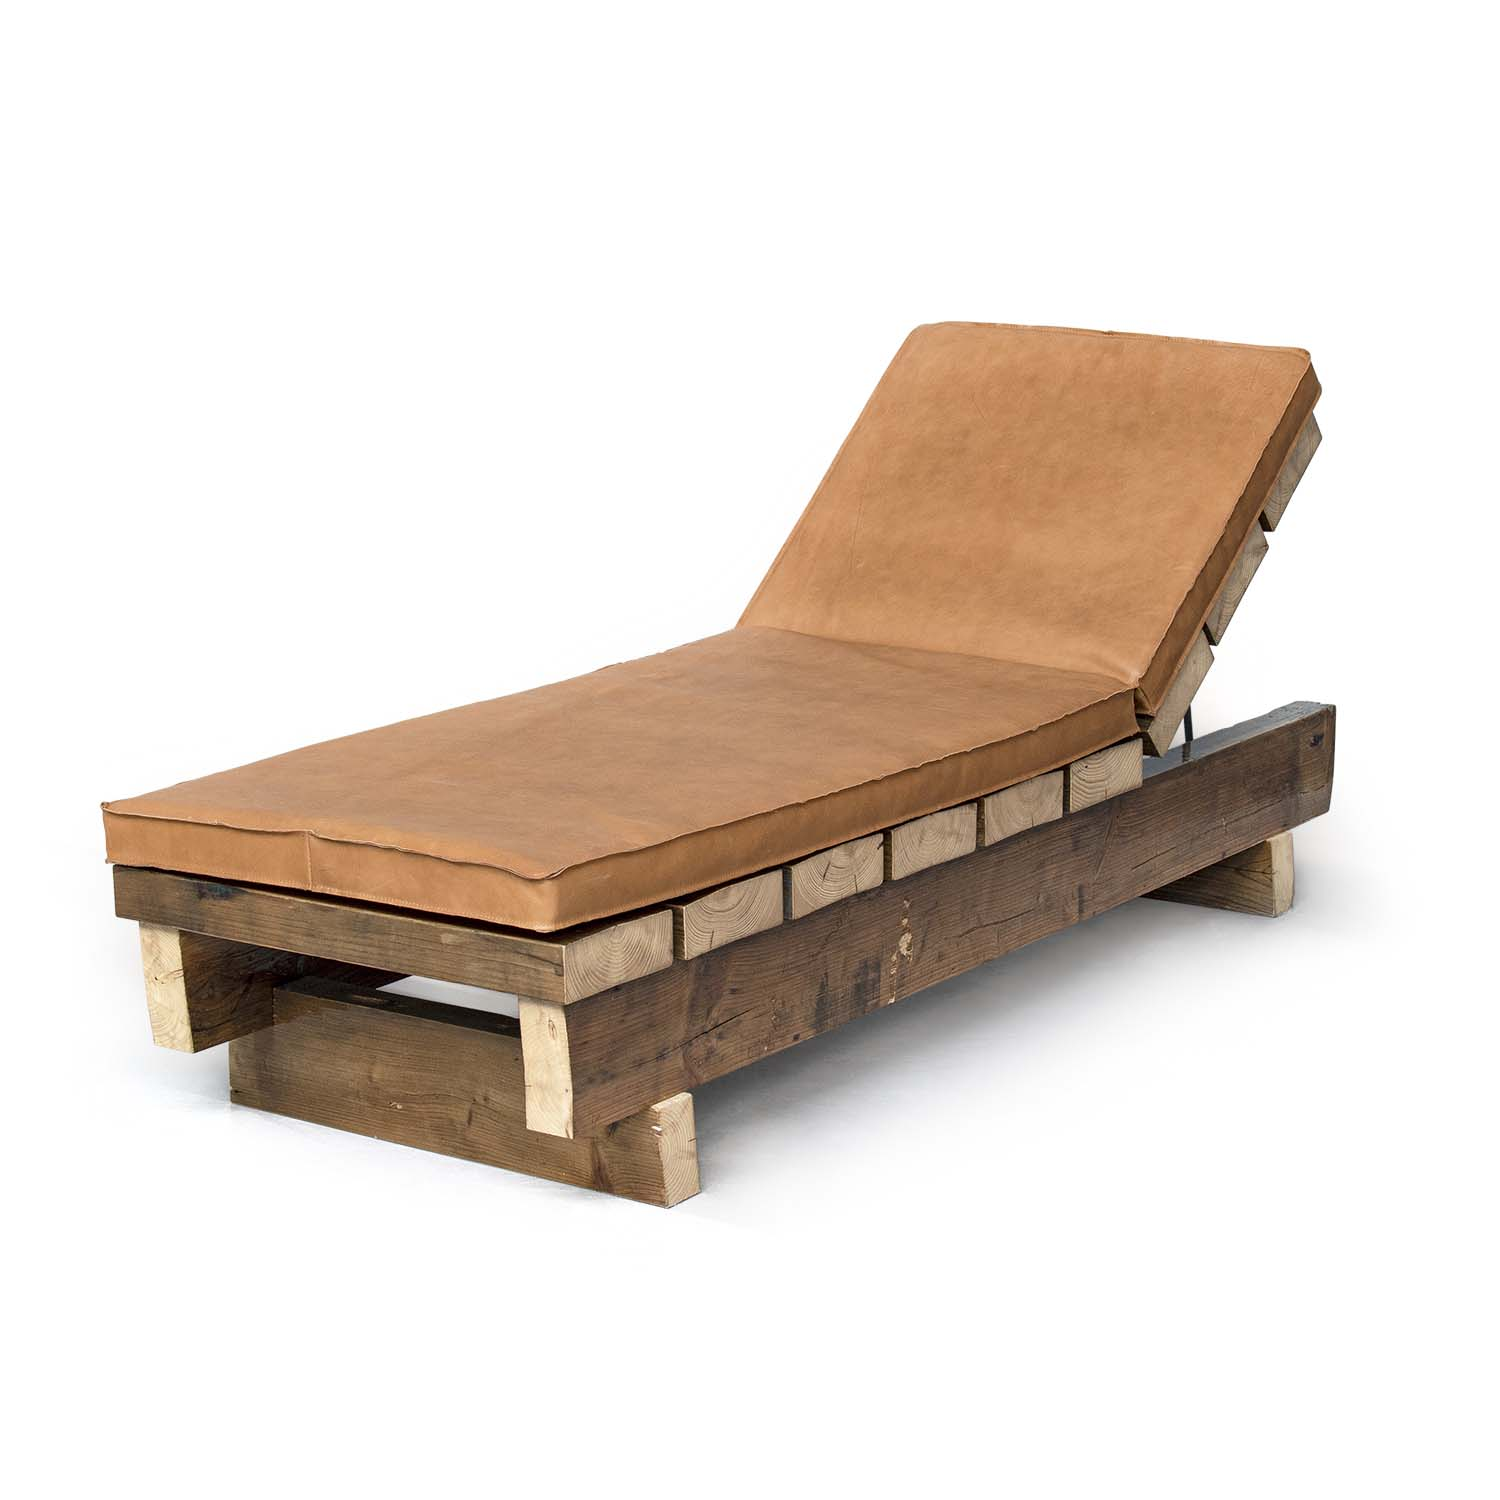 04_Beam_Leather_Daybed_perspective-thumbnail